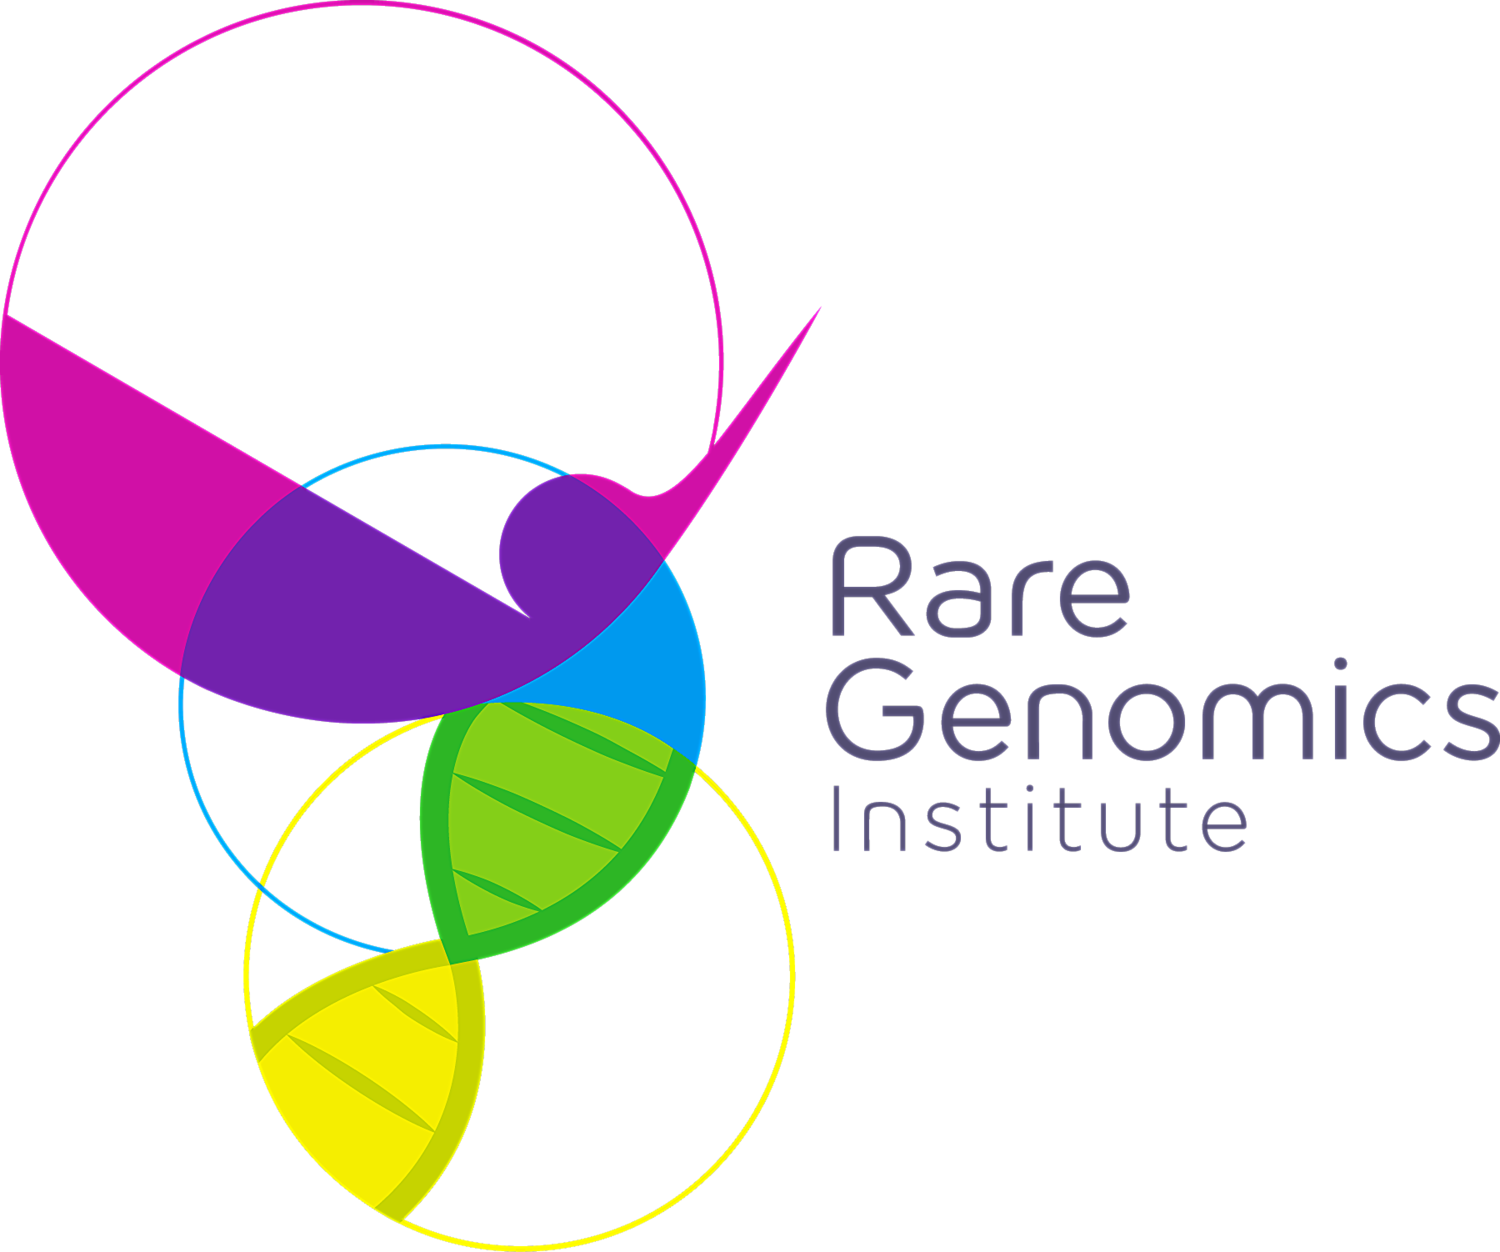 Rare Genomics Institute logo